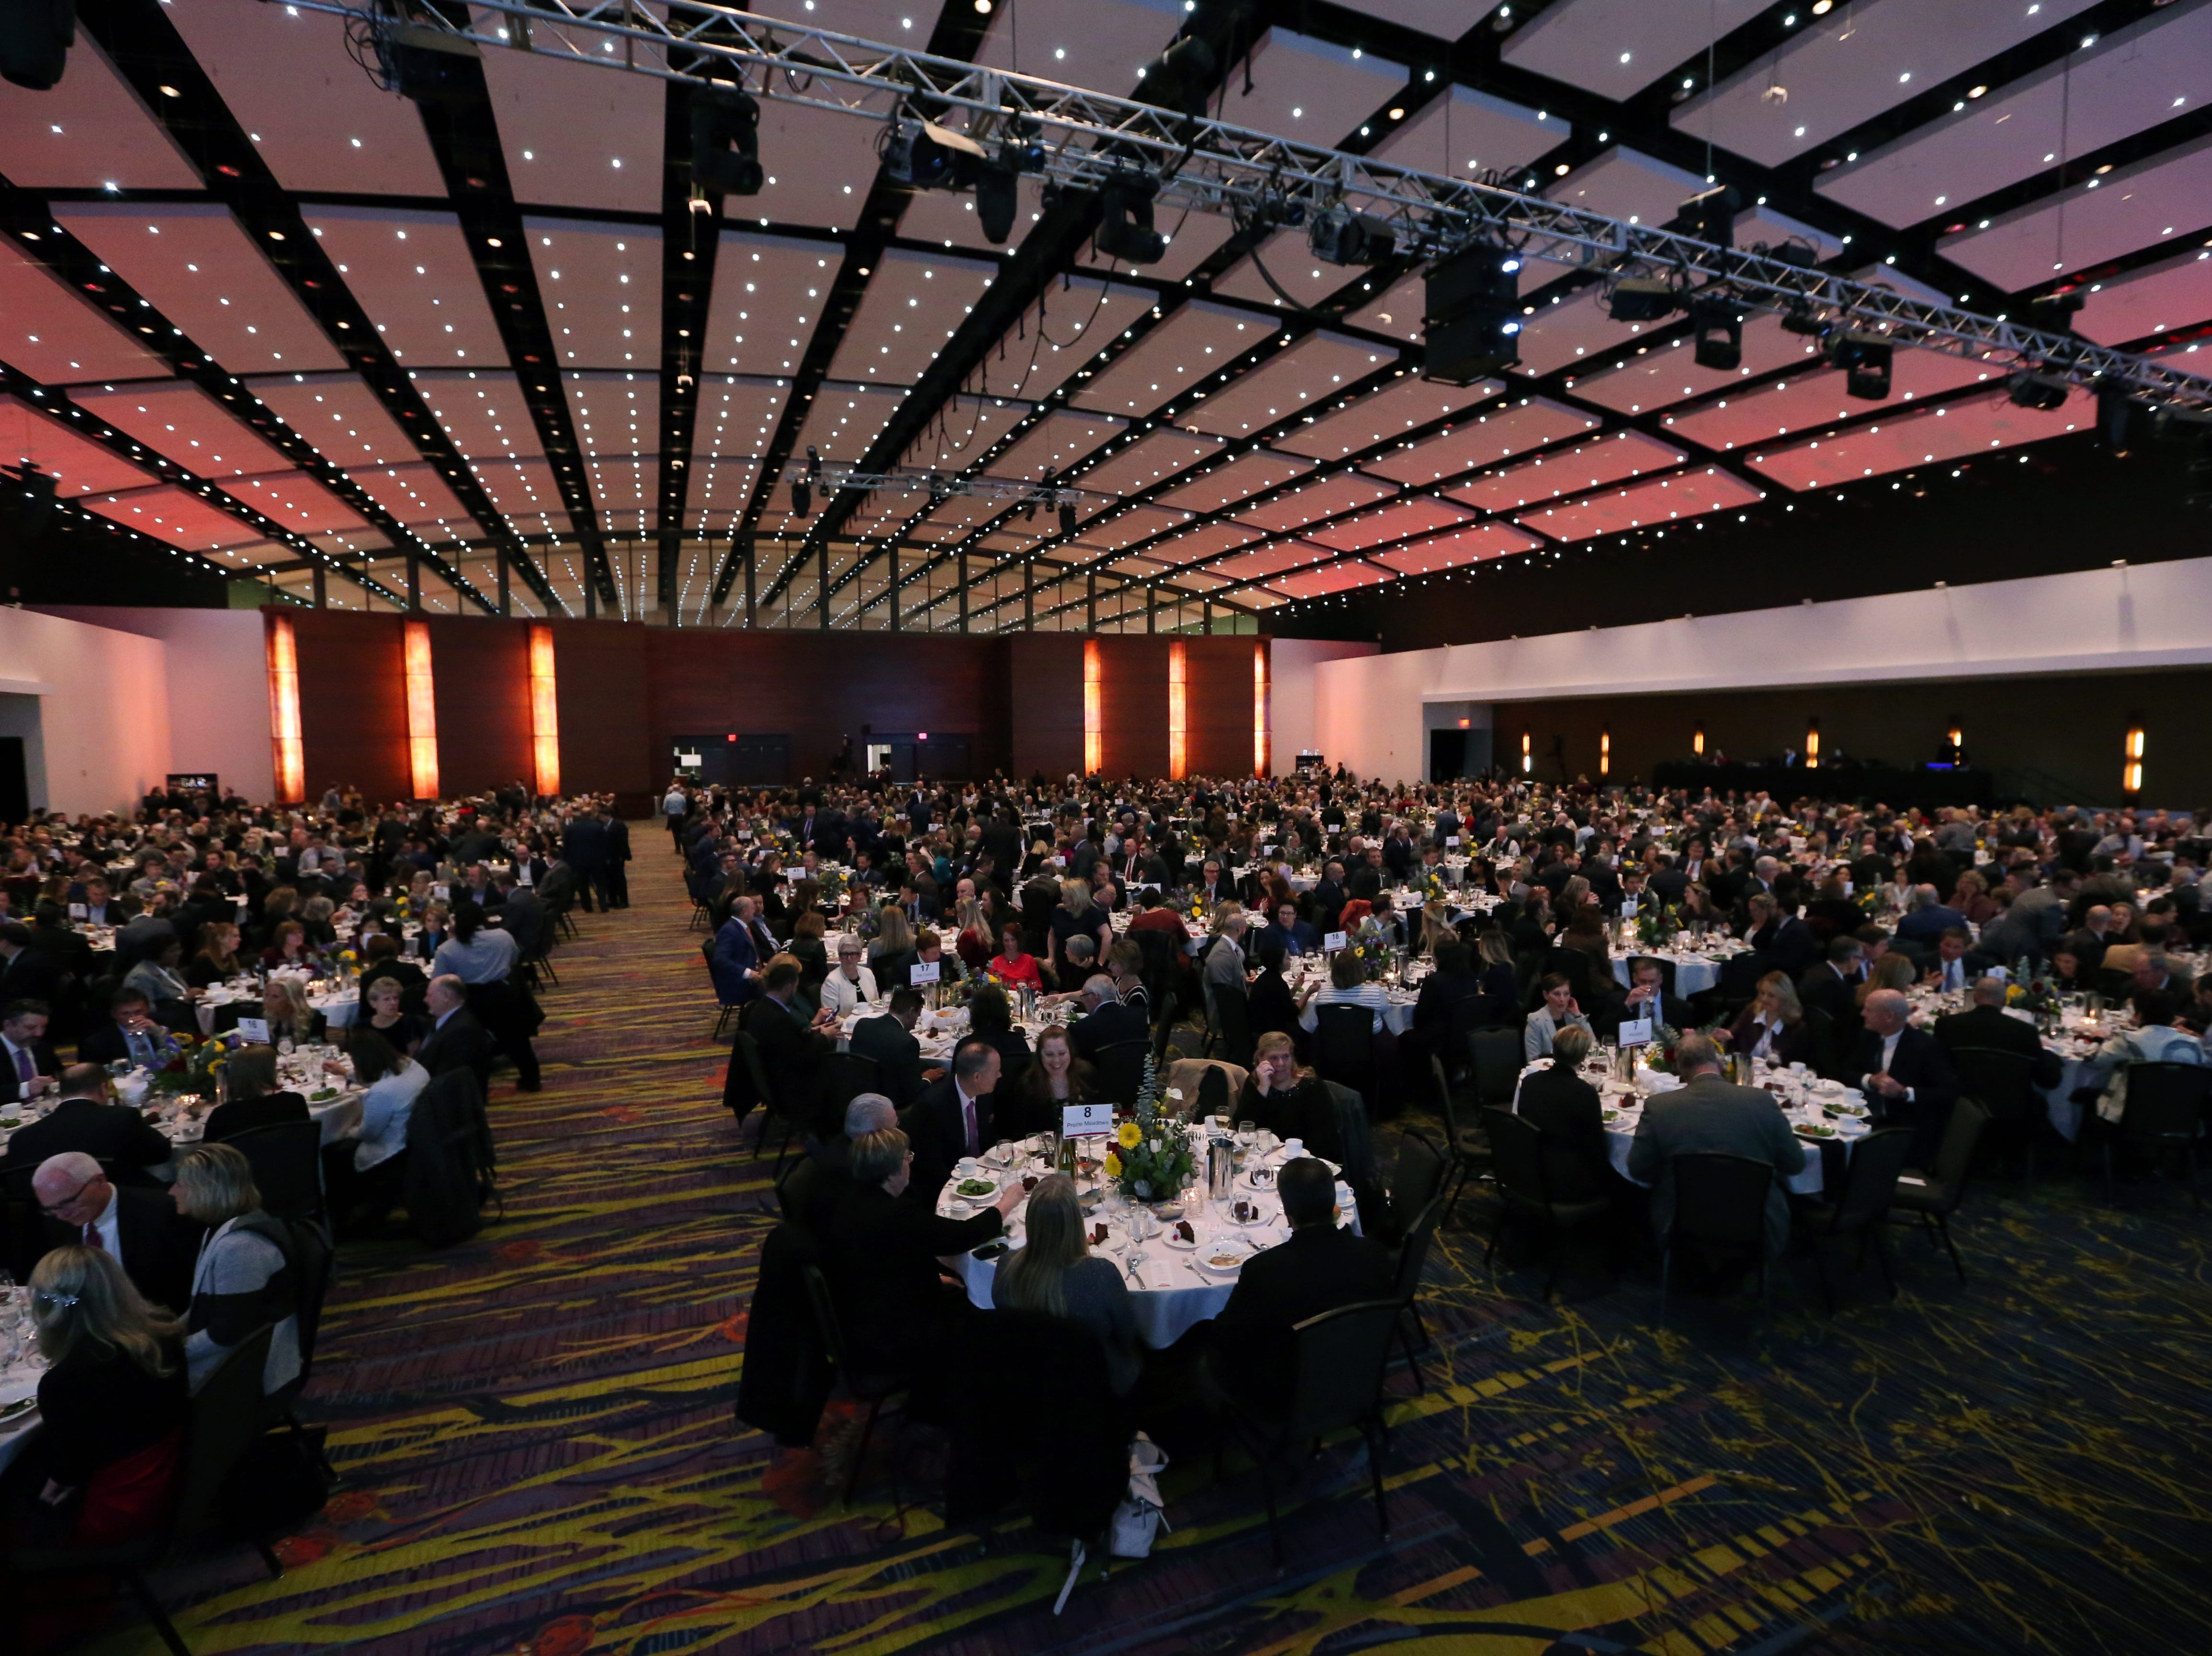 Scenes from the at the Partnership's Annual Dinner on January 17, 2019 at the Iowa Events Center.